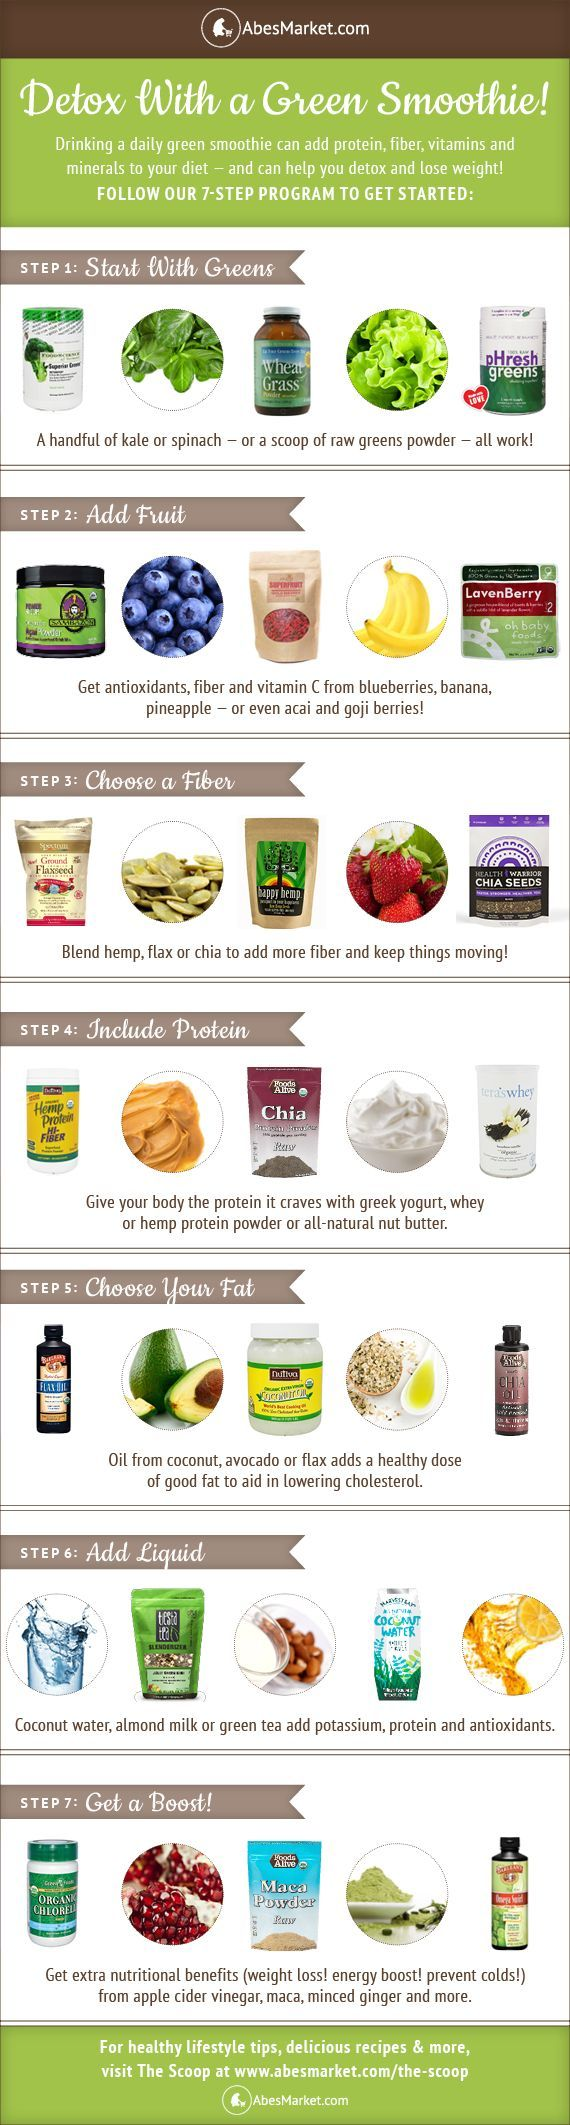 A Daily Detox Green Smoothie in 7 Easy Steps